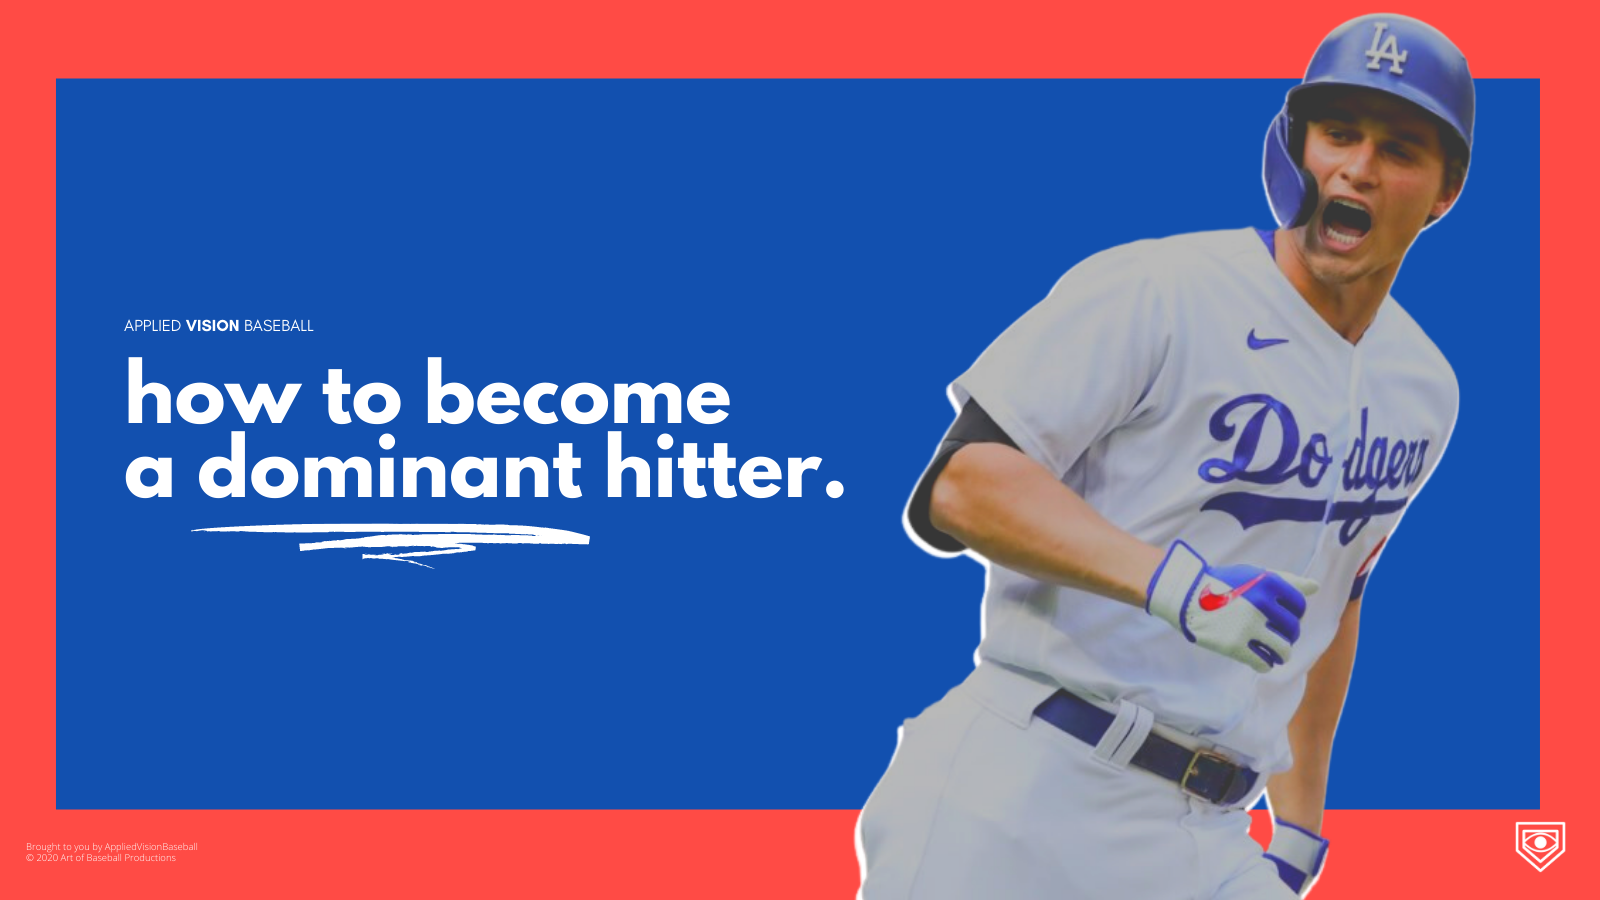 How To Become a Dominant Hitter